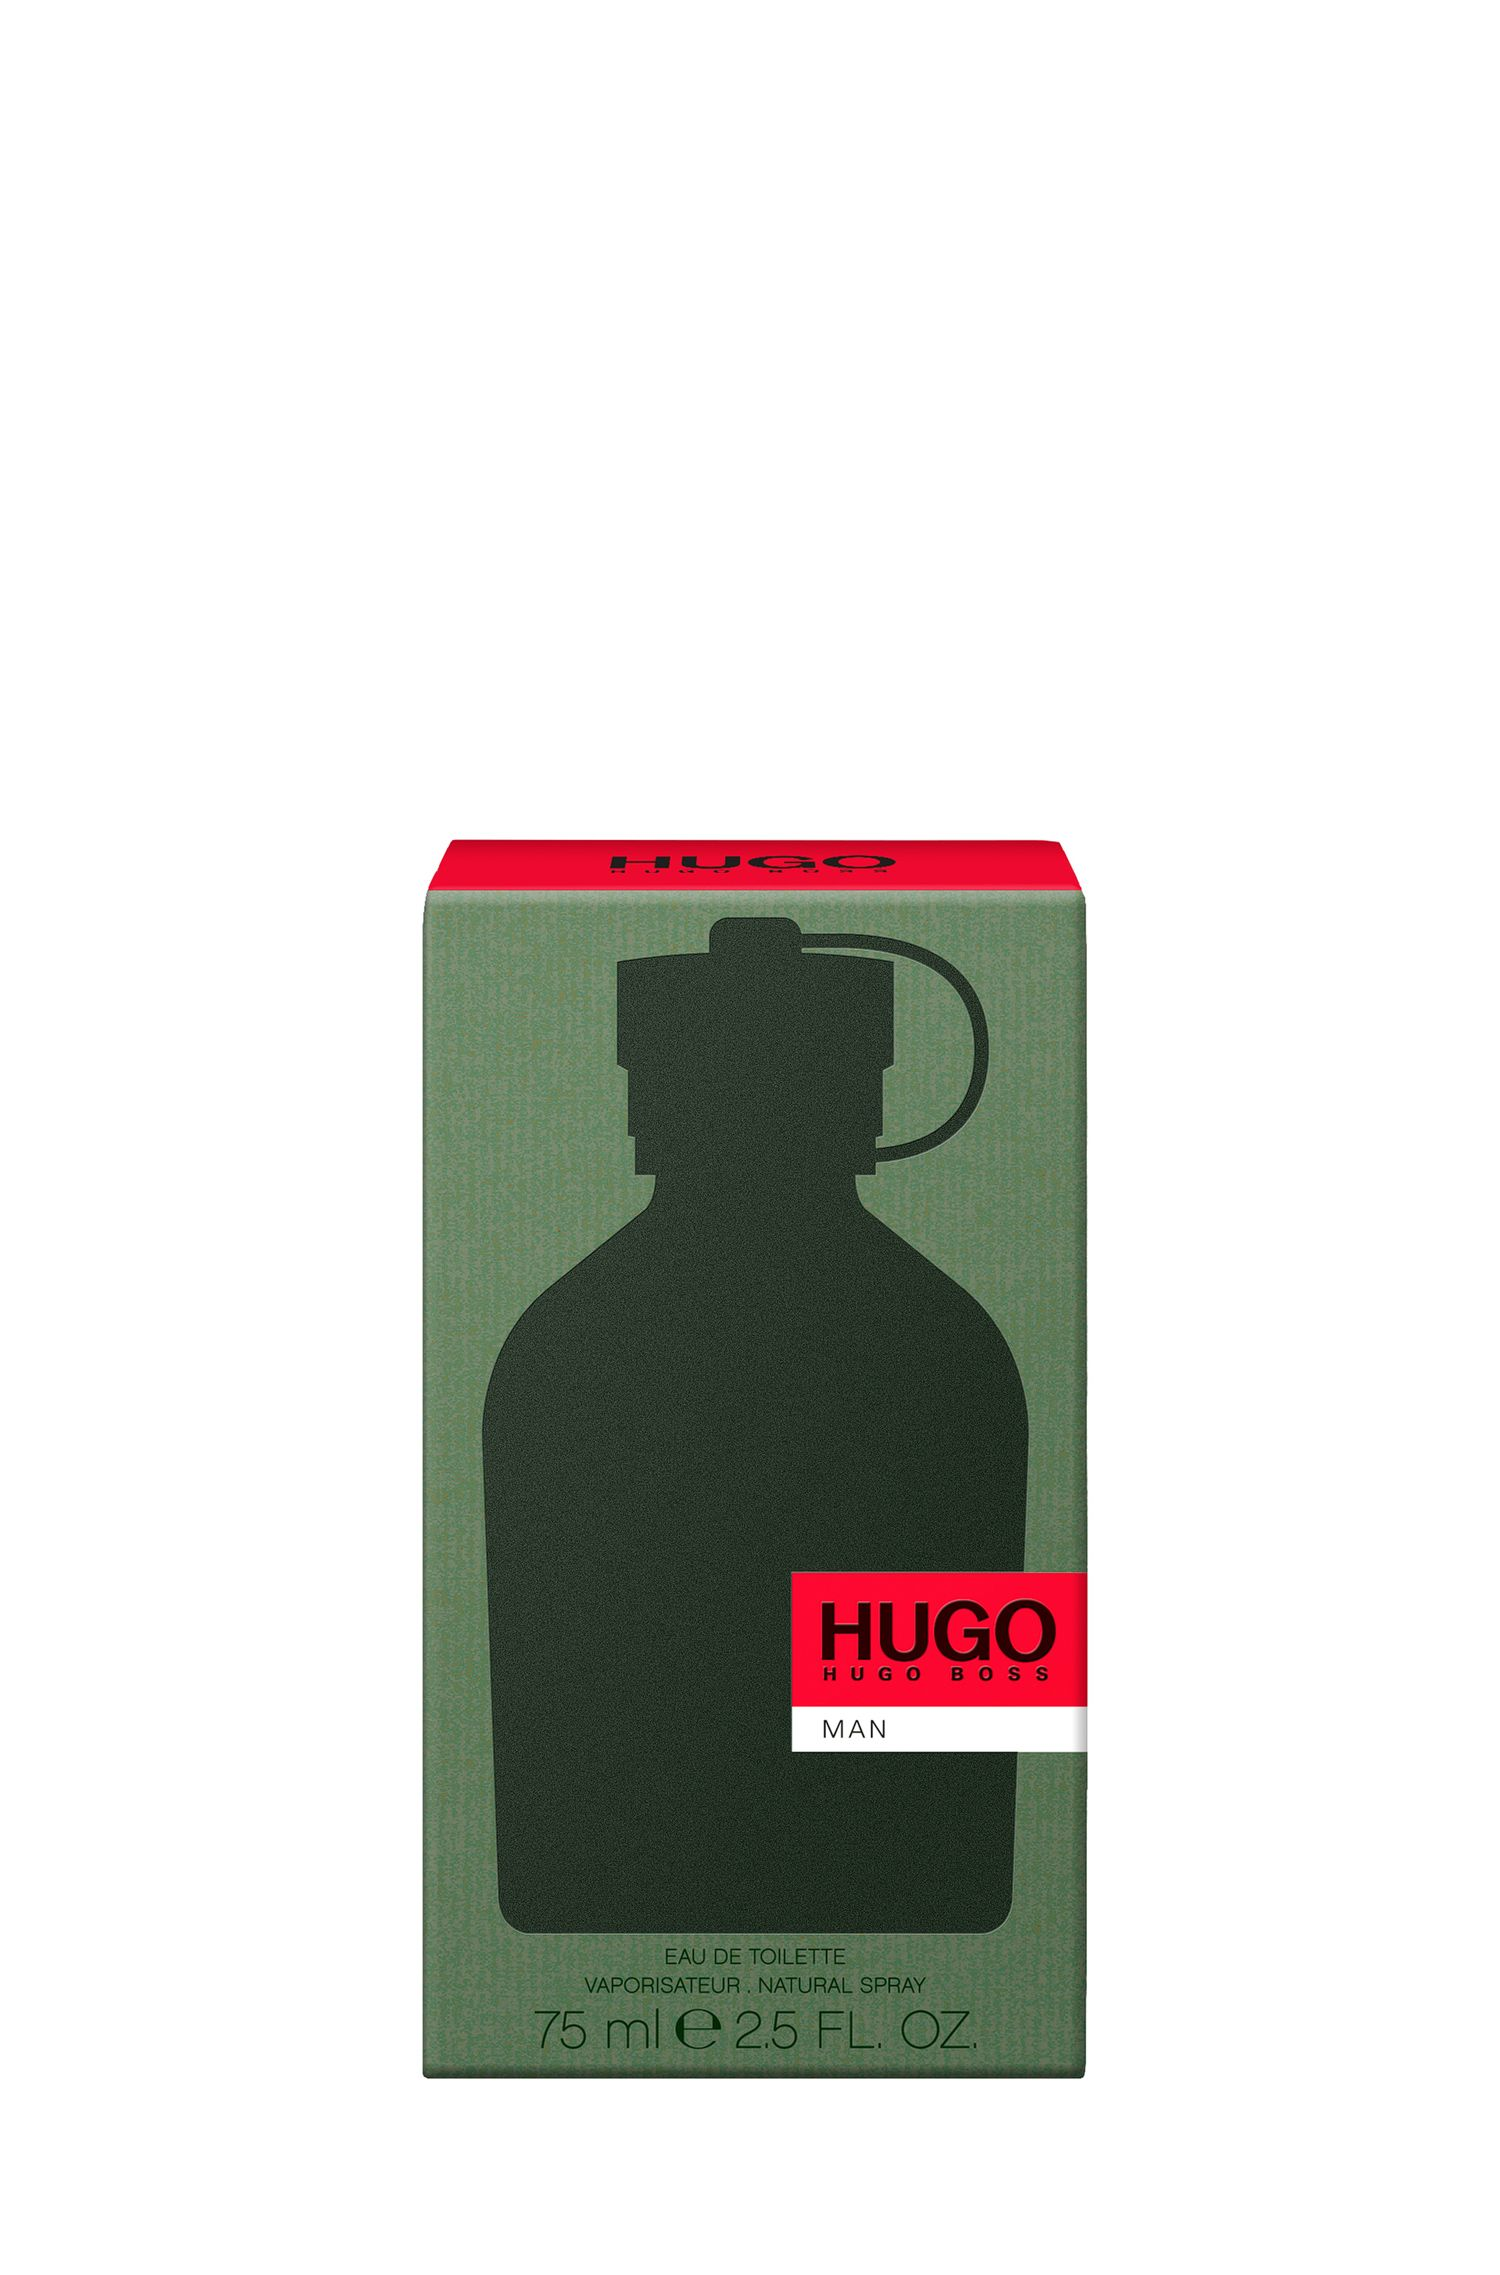 Eau de Toilette HUGO Man, 75 ml